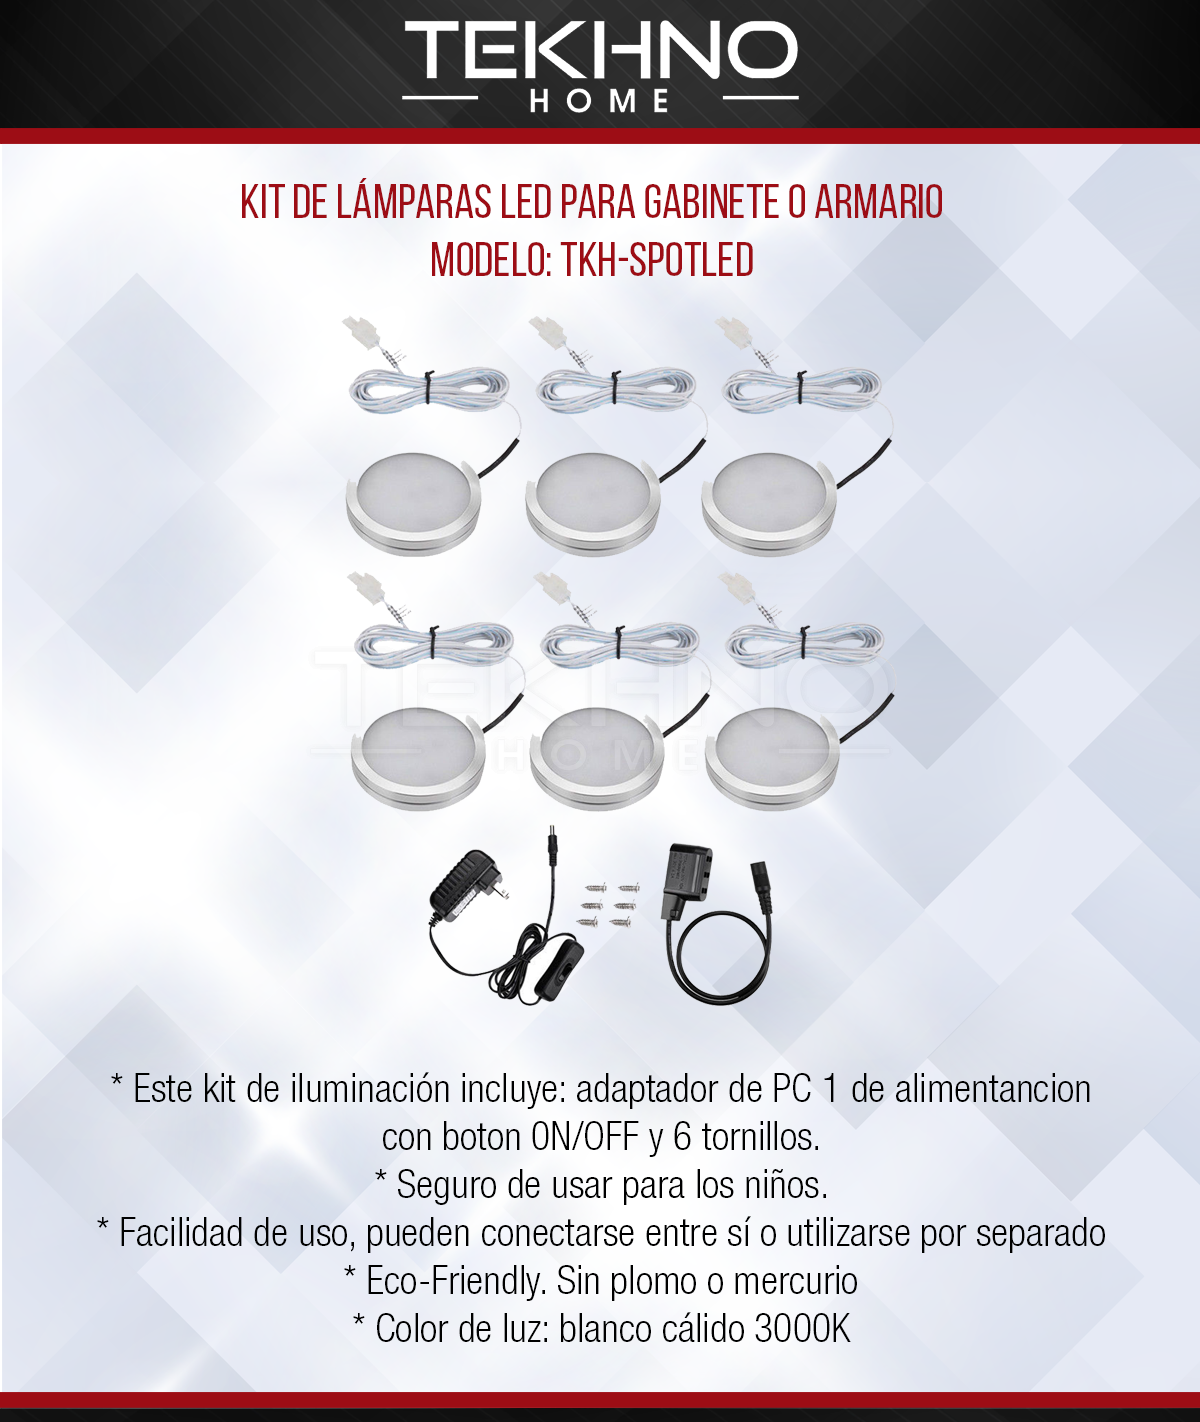 kit de luces LED